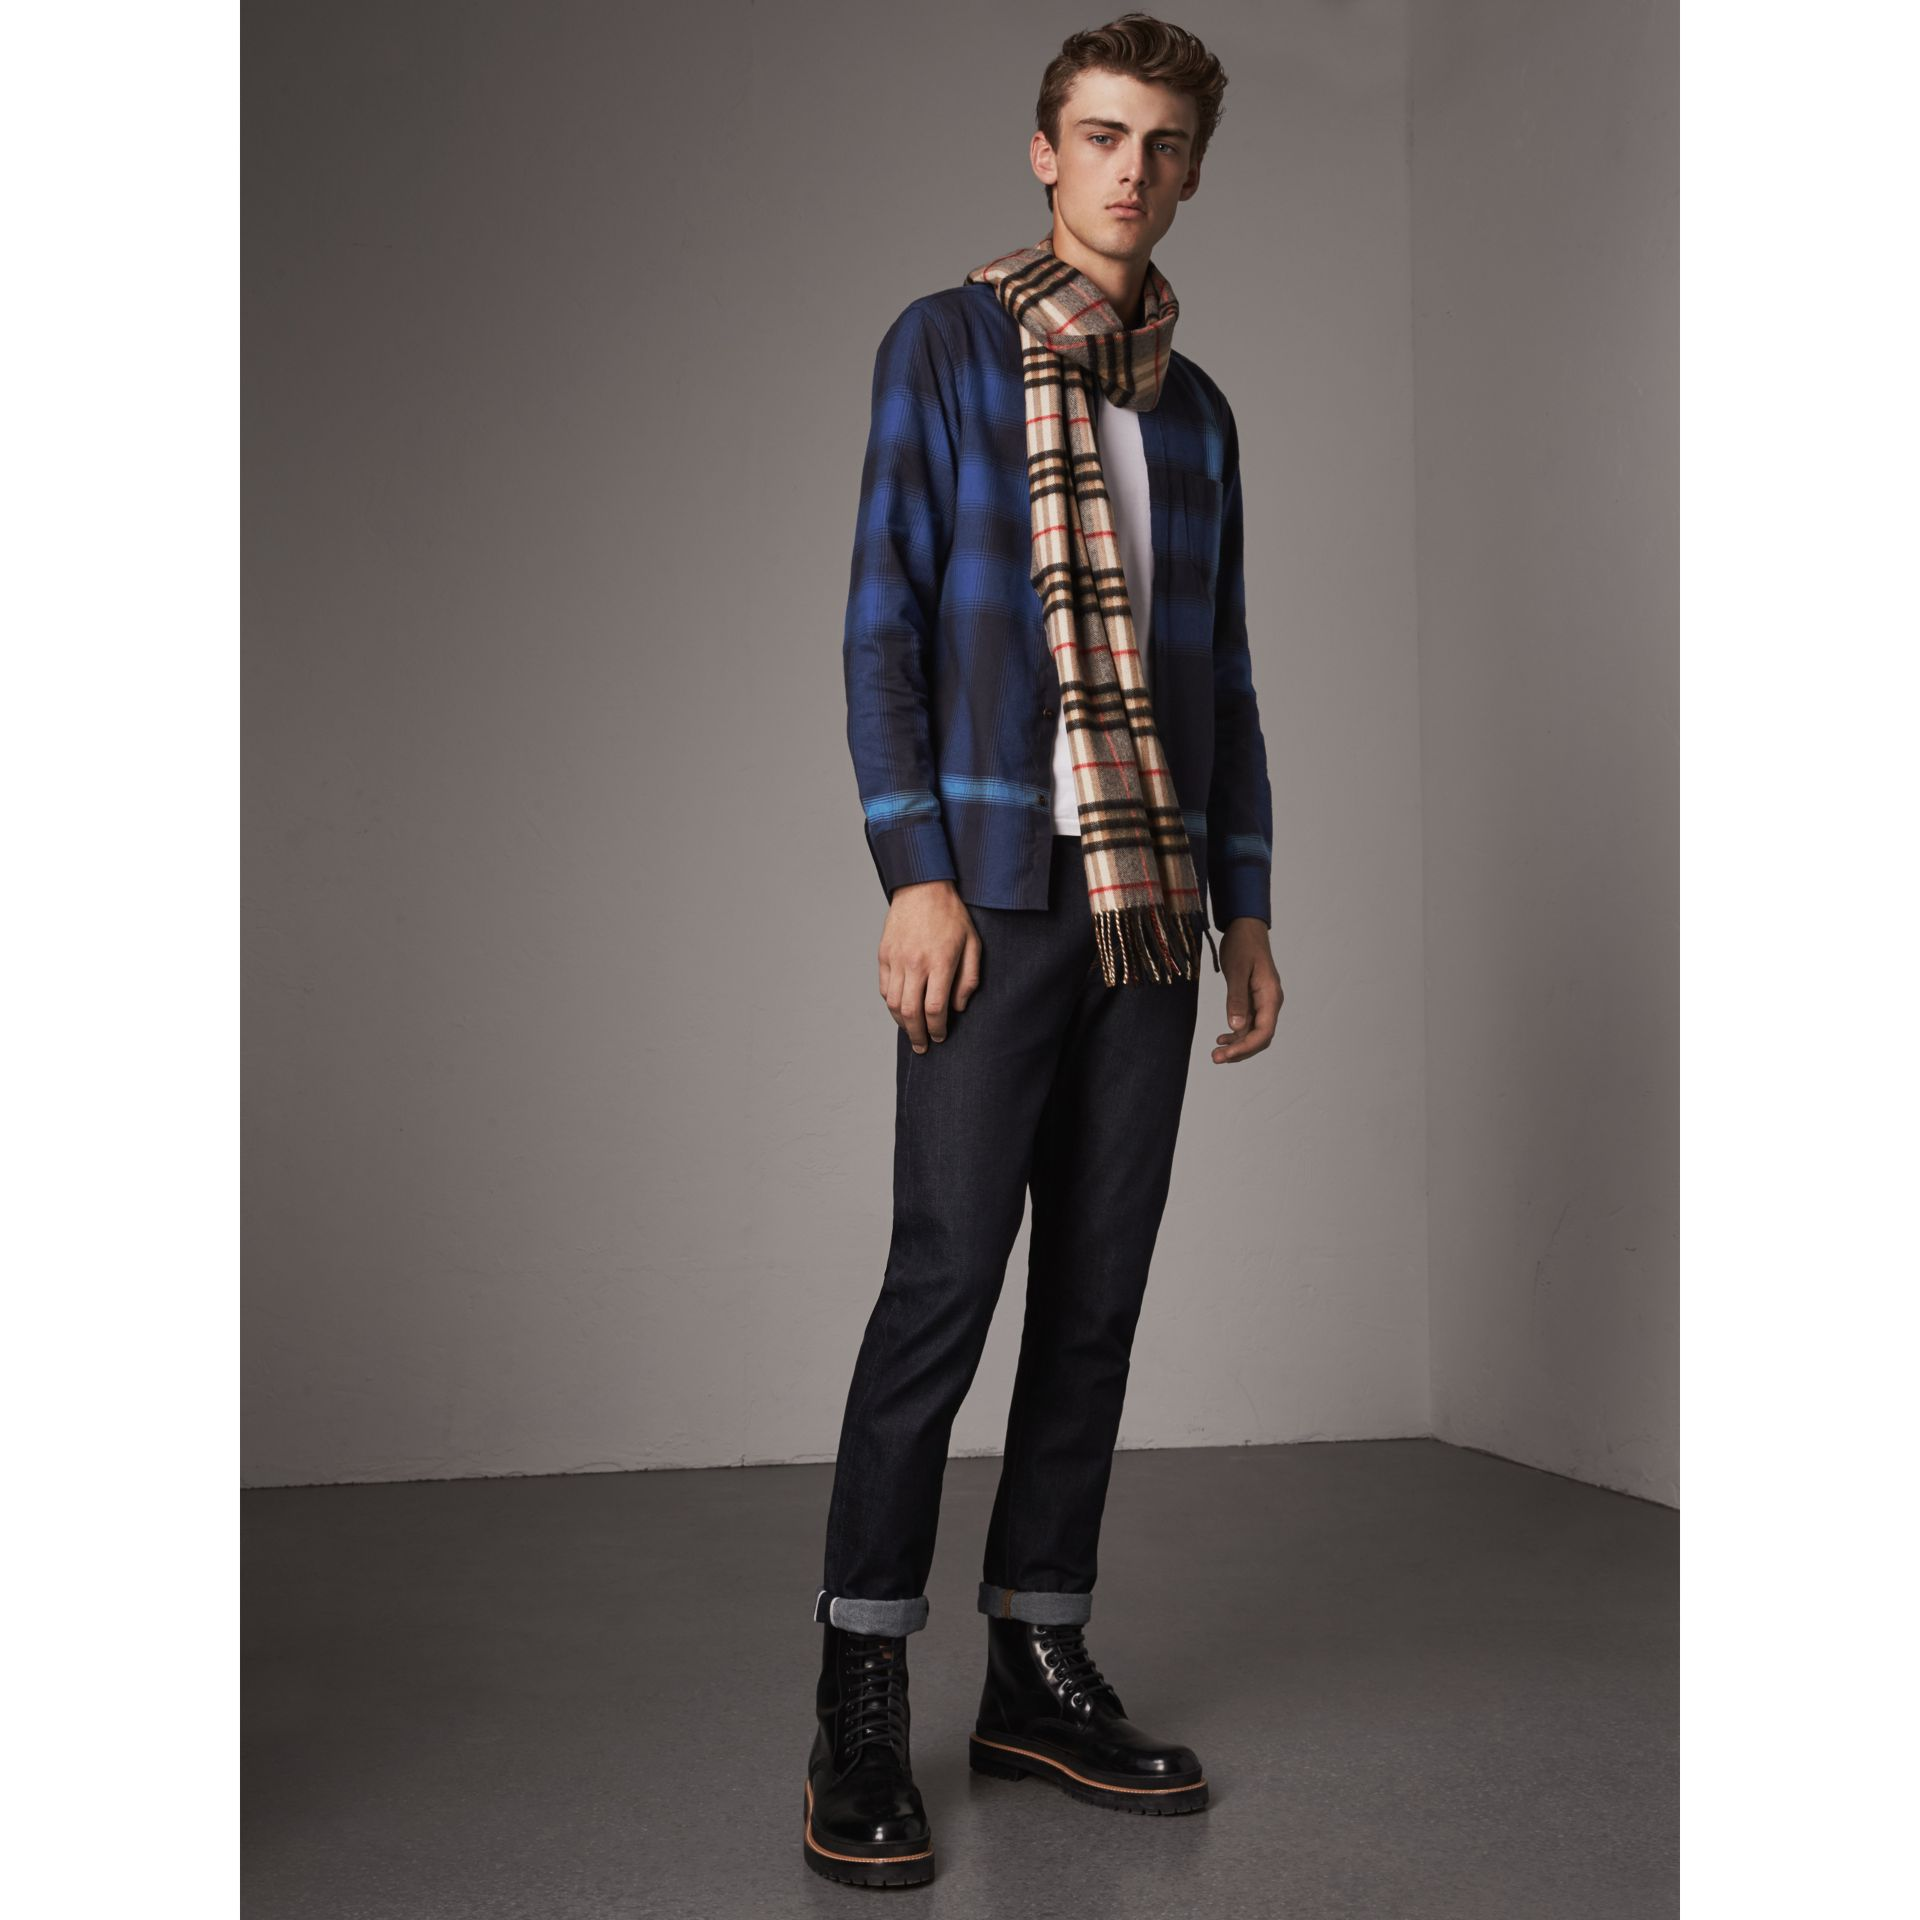 Ombré Check Cotton Flannel Shirt in Cobalt Blue - Men | Burberry - gallery image 4